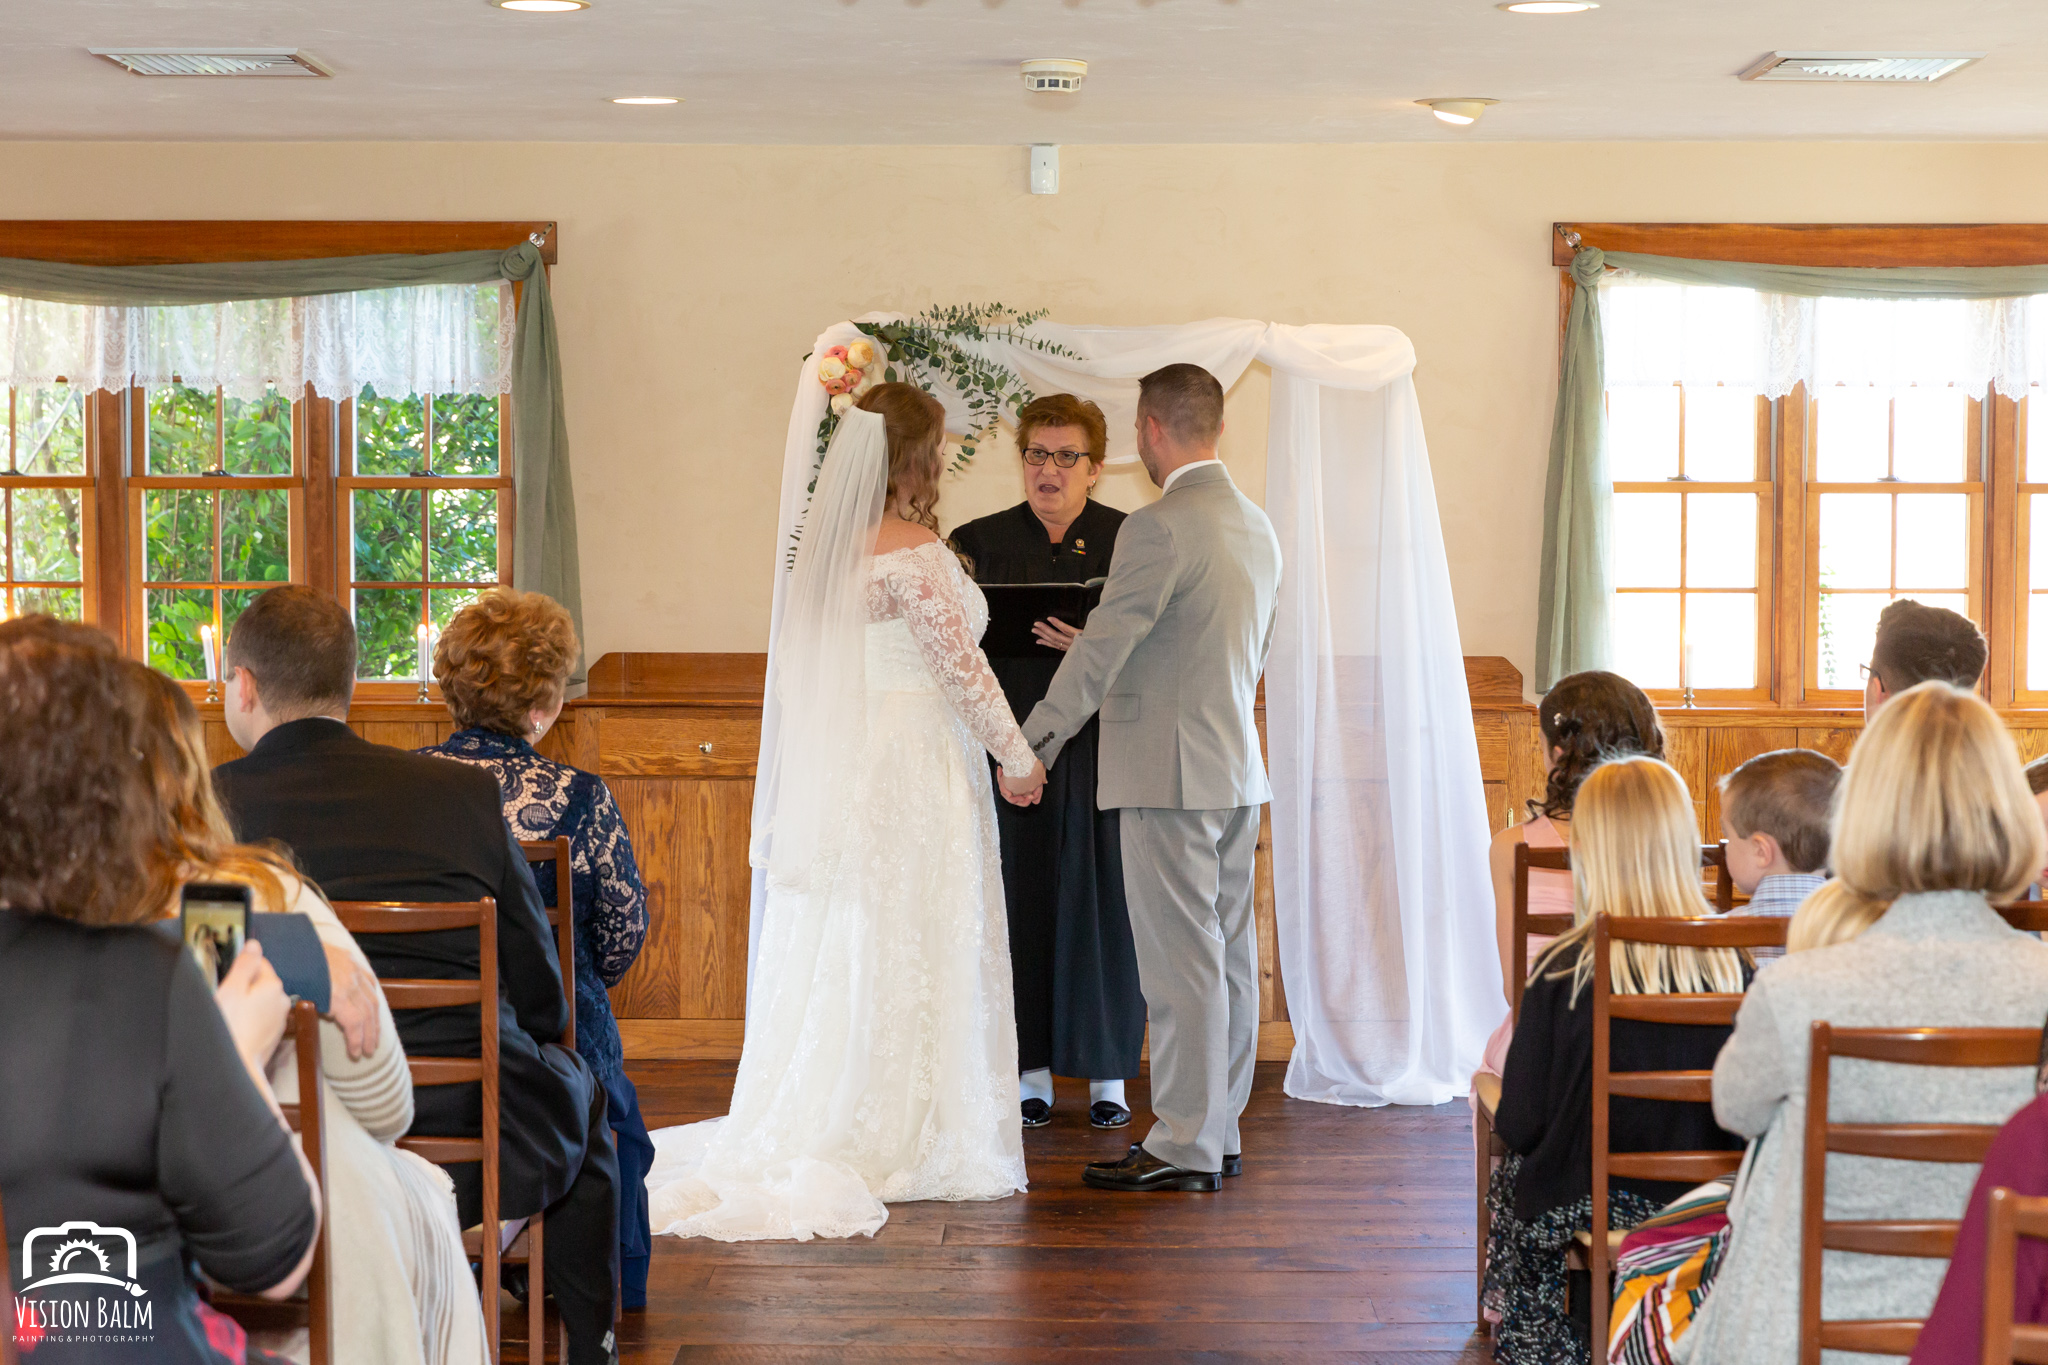 Wedding photo of bride and groom holding hands at the ceremony in Zuka's Hilltop Barn by Vision Balm in Charleston, SC.